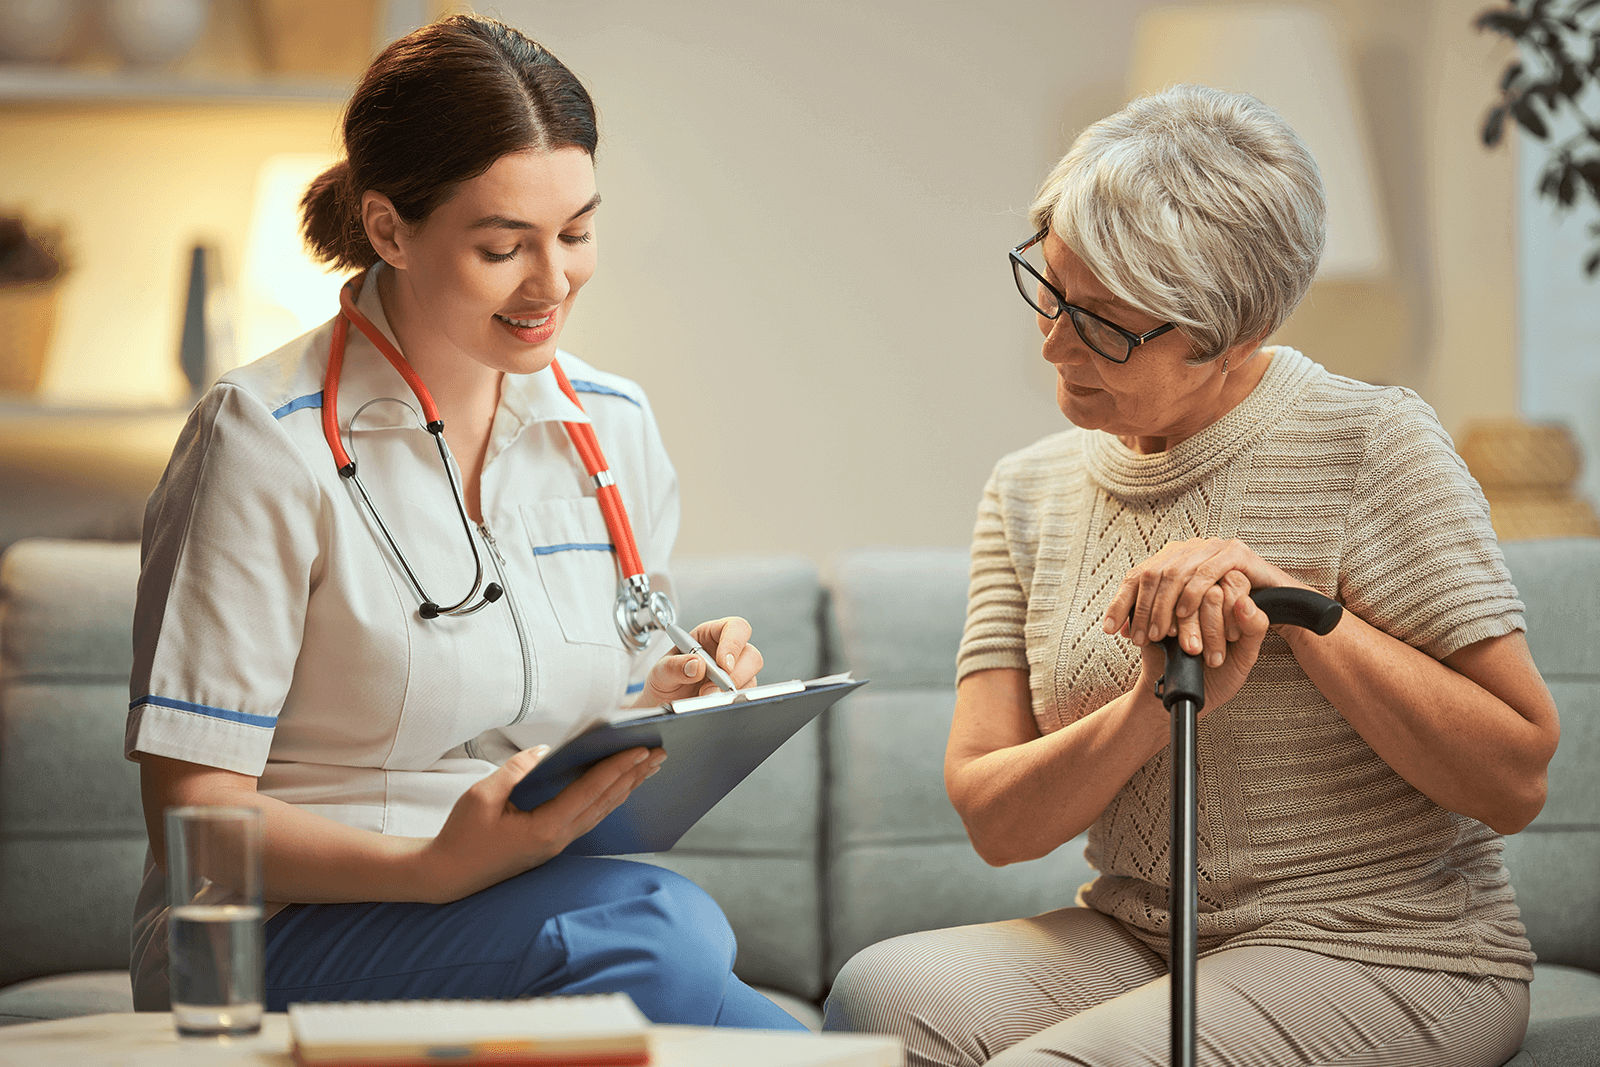 What You Need to Know About Home Health Aide Agencies